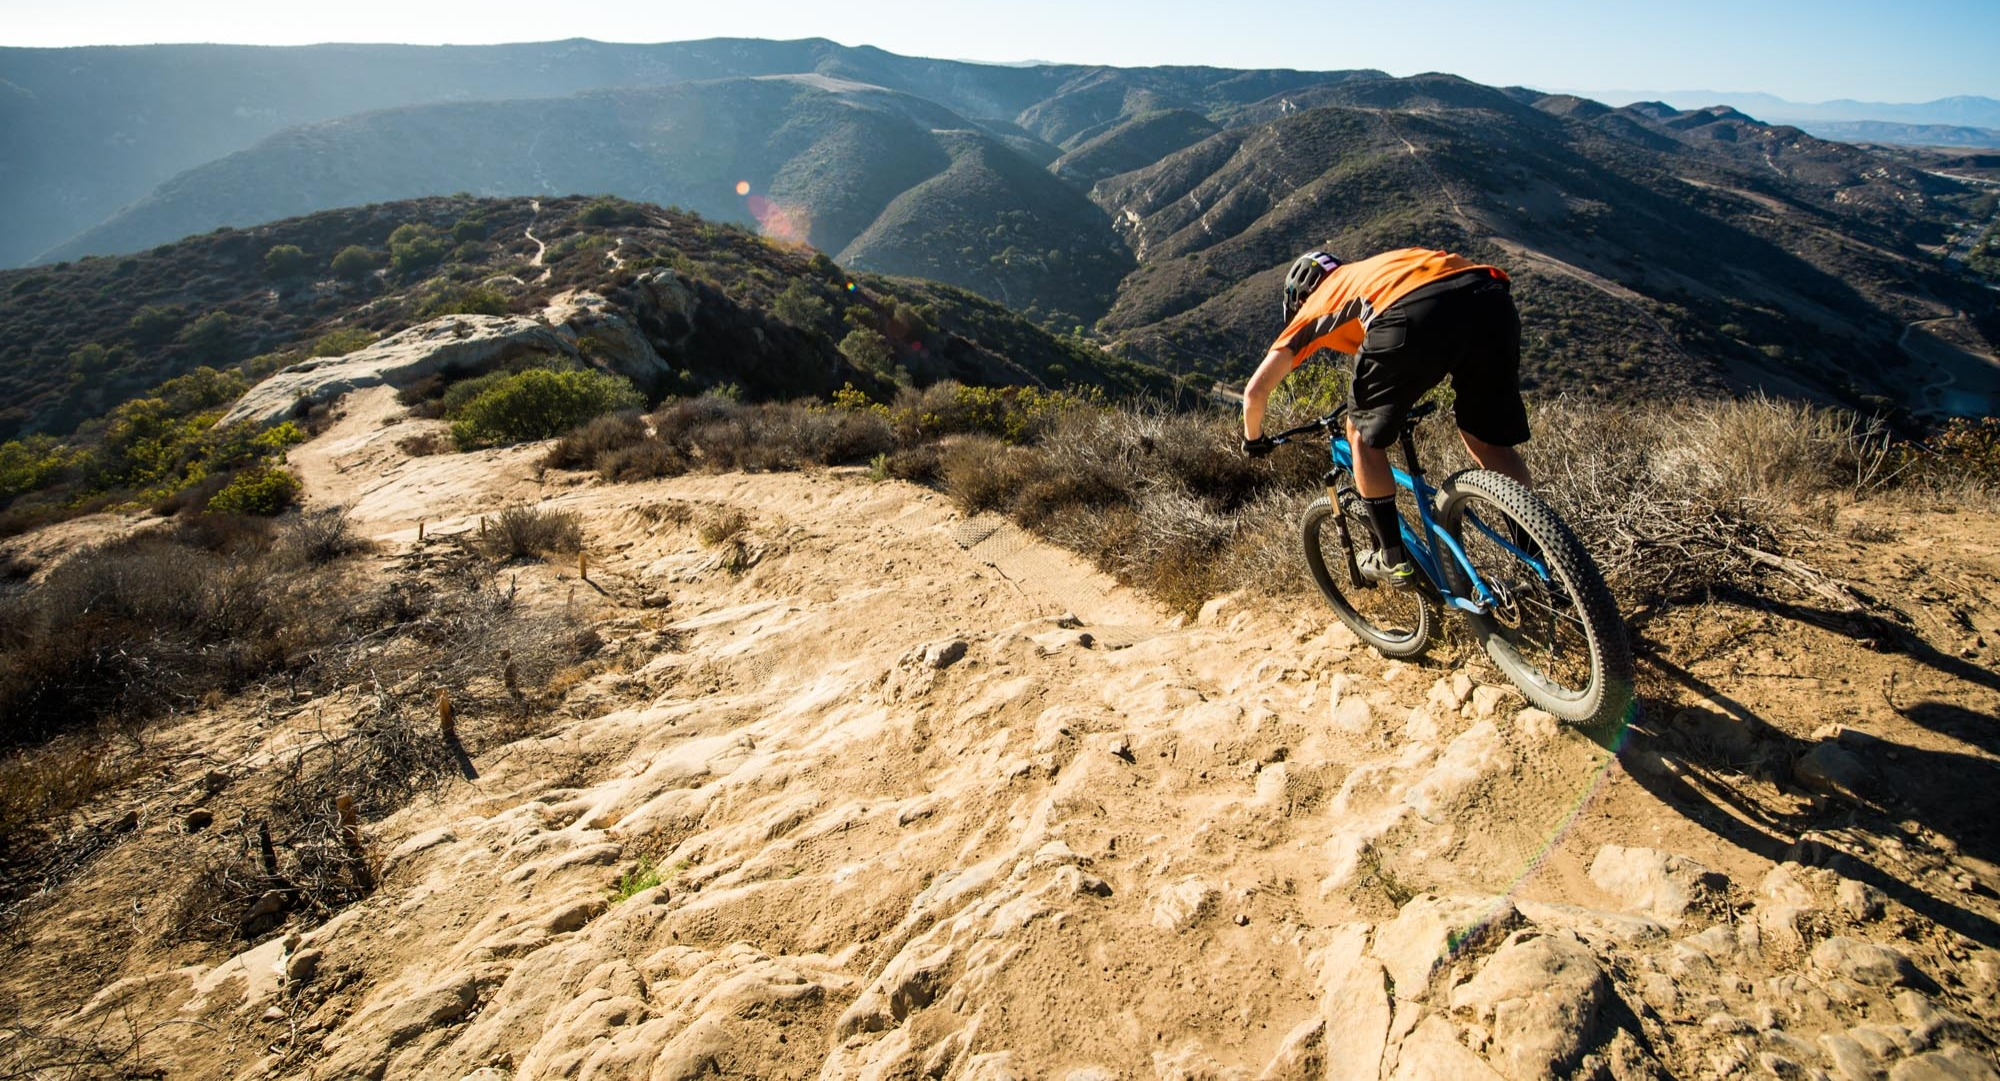 The Jamis Dragonslayer's plus-size tires smooth rocky trails